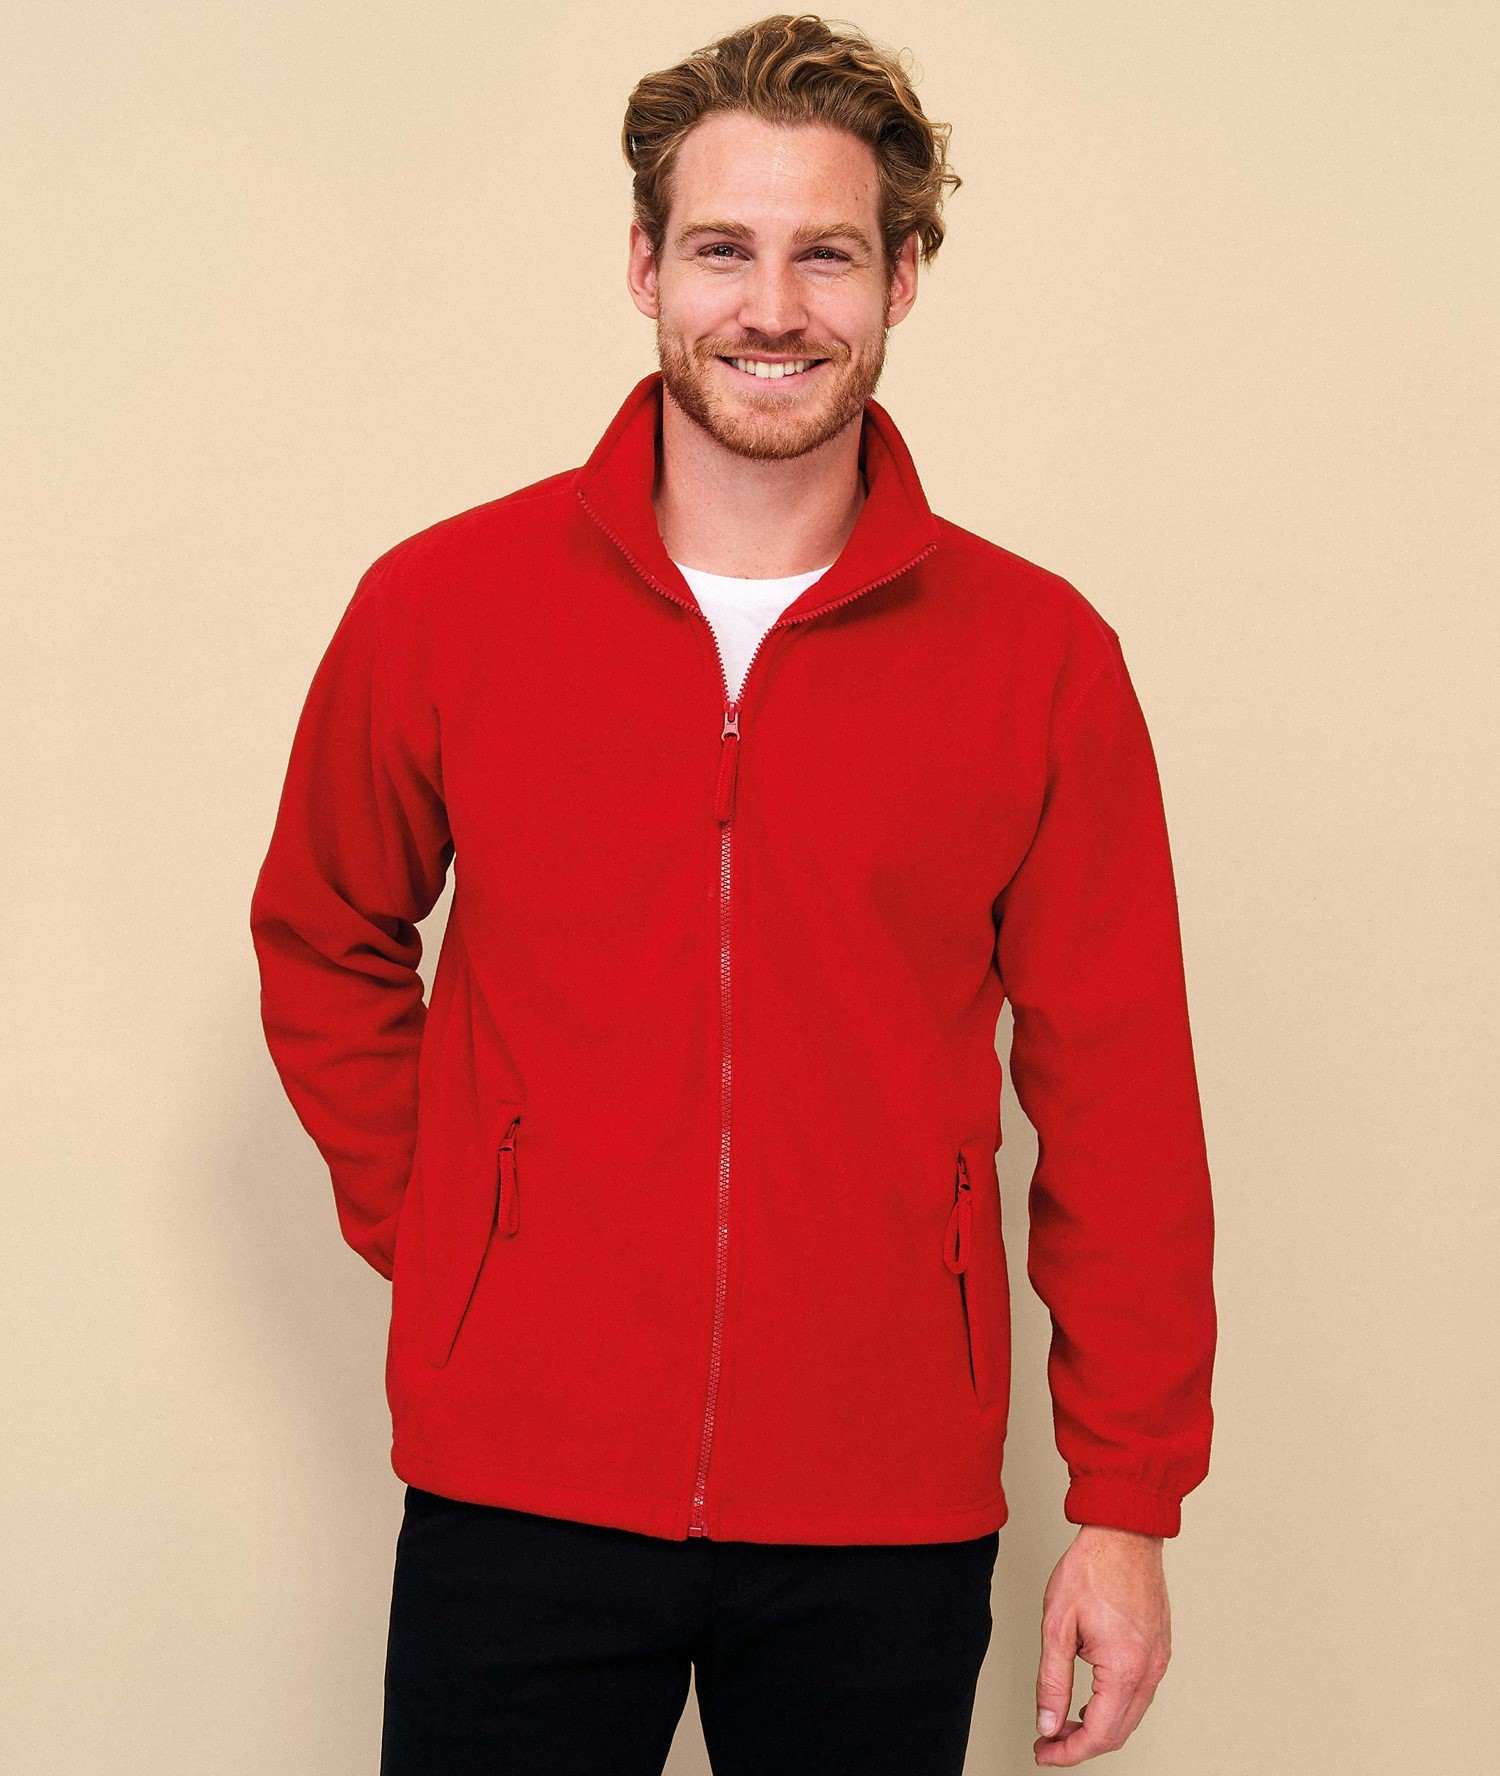 NORTH MEN - ZIPPED FLEECE JACKET